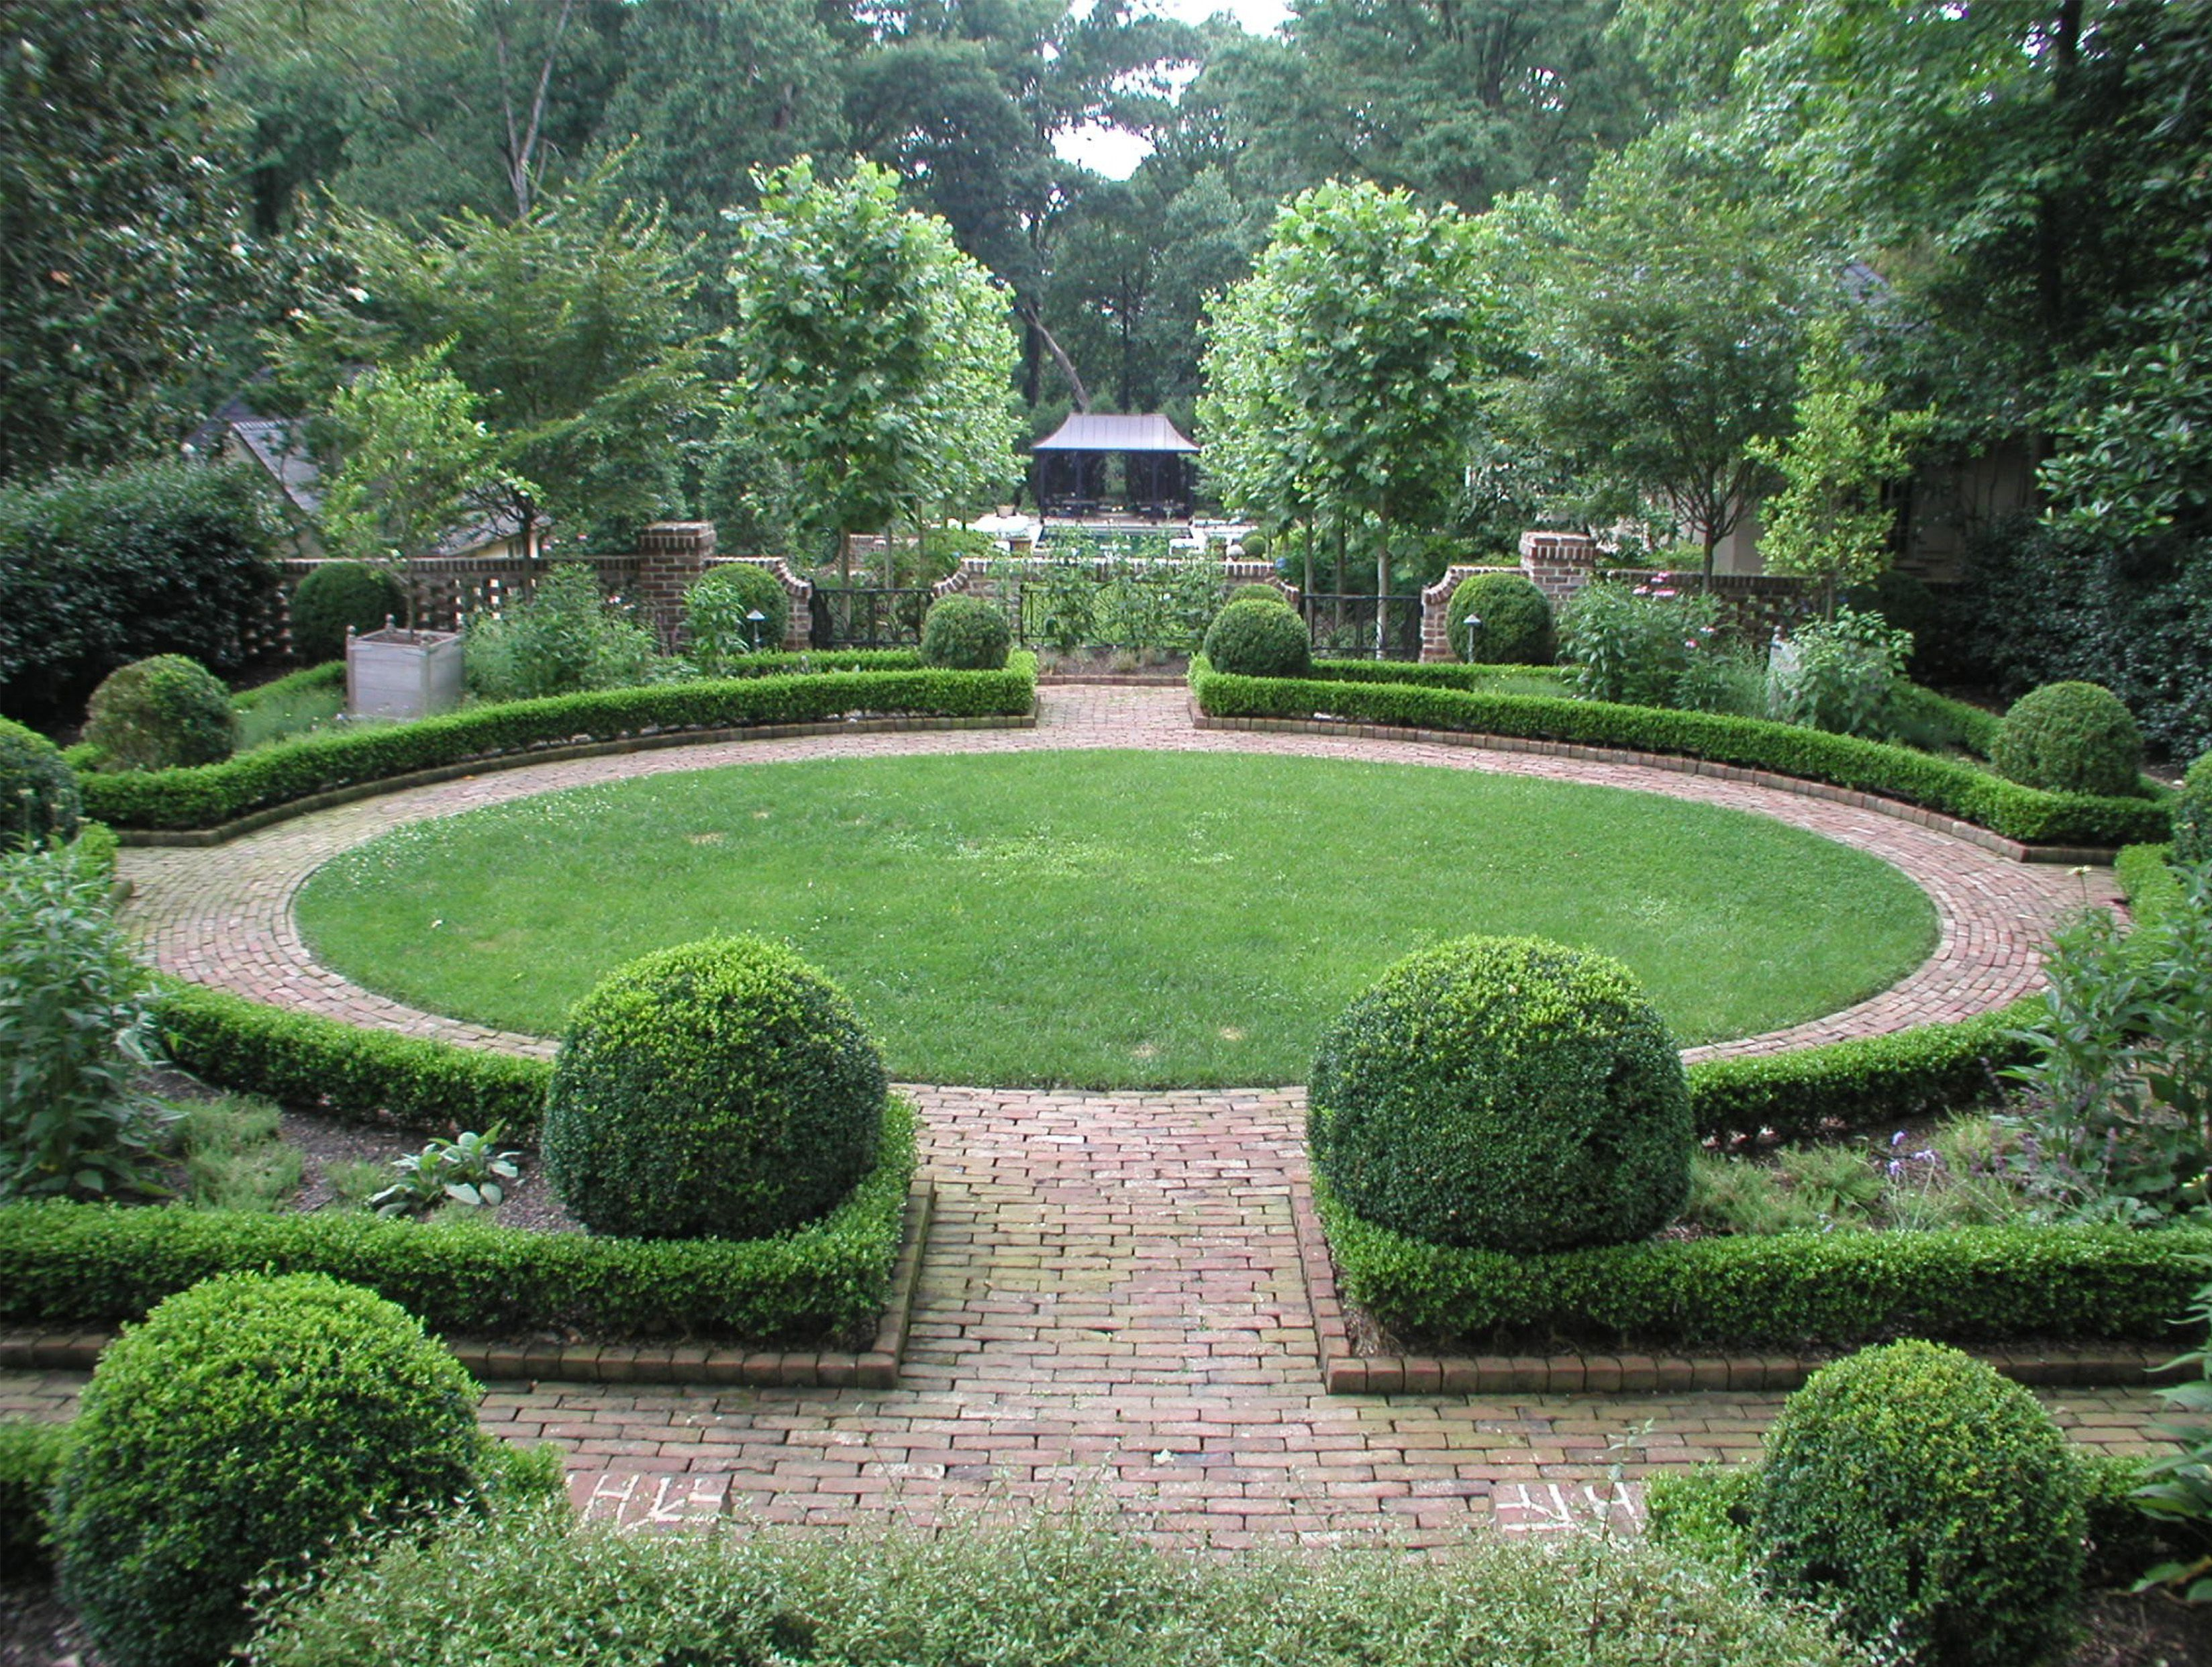 Attractive Backyard Landscape Design Ideas in Round Shape with Brick Path also Green Plants